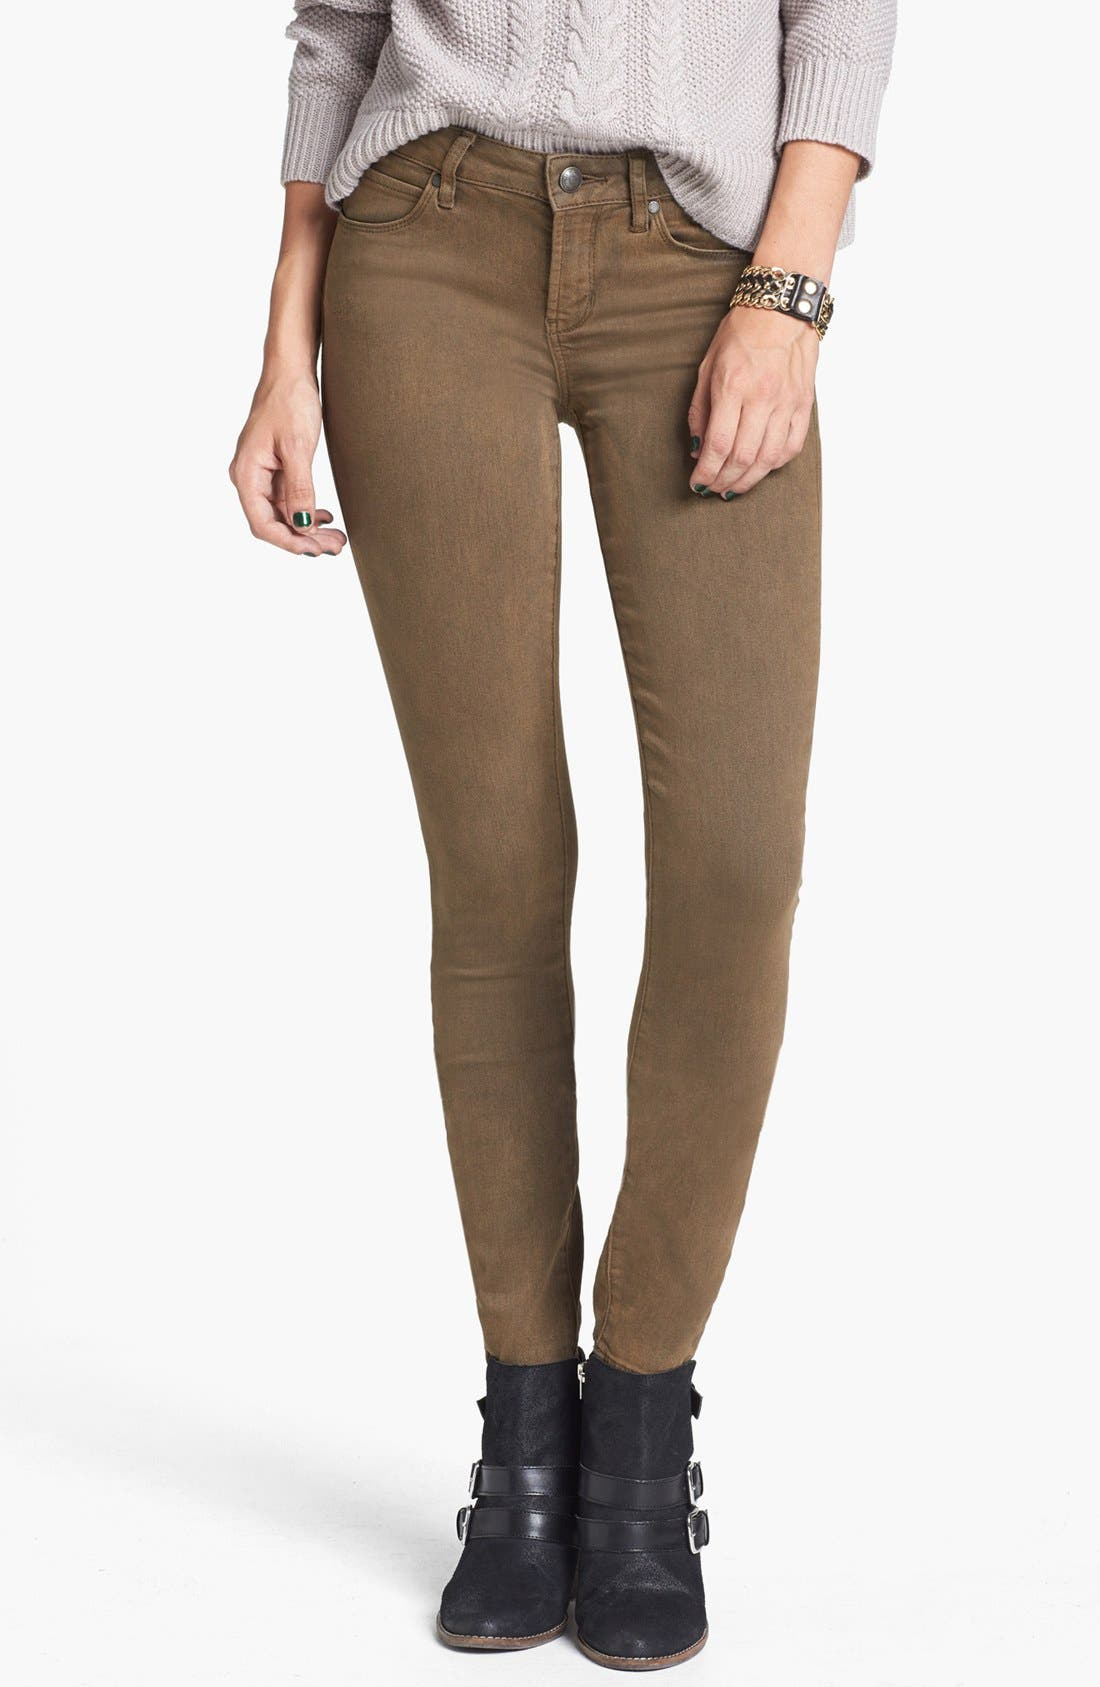 Main Image - Articles of Society 'Mya' Overdyed Skinny Jeans (Army) (Juniors)